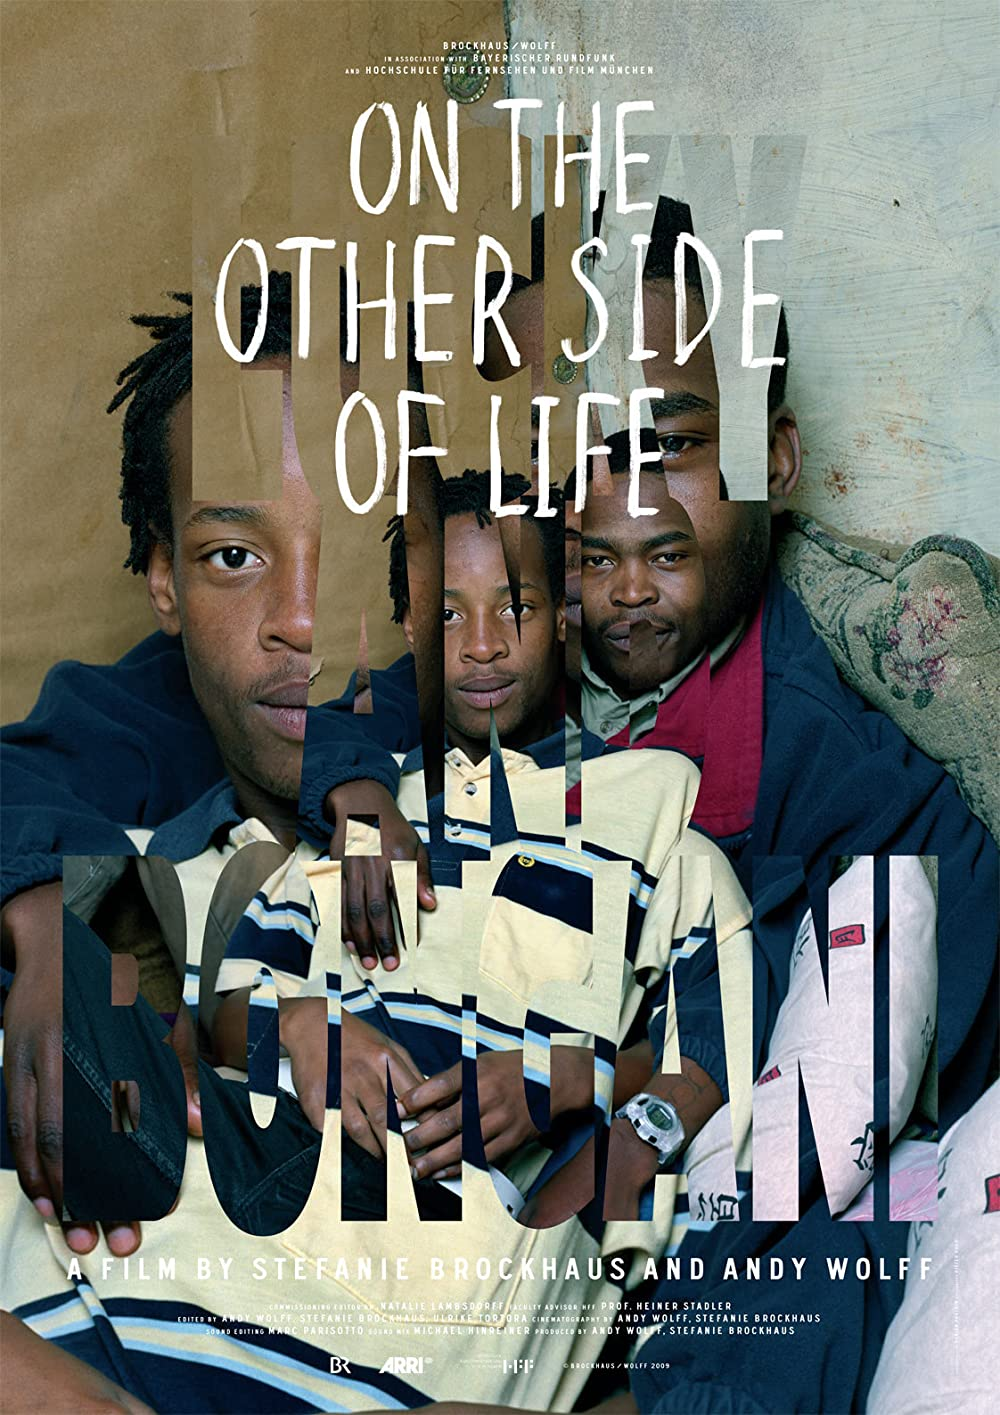 Watch On the Other Side of Life Online